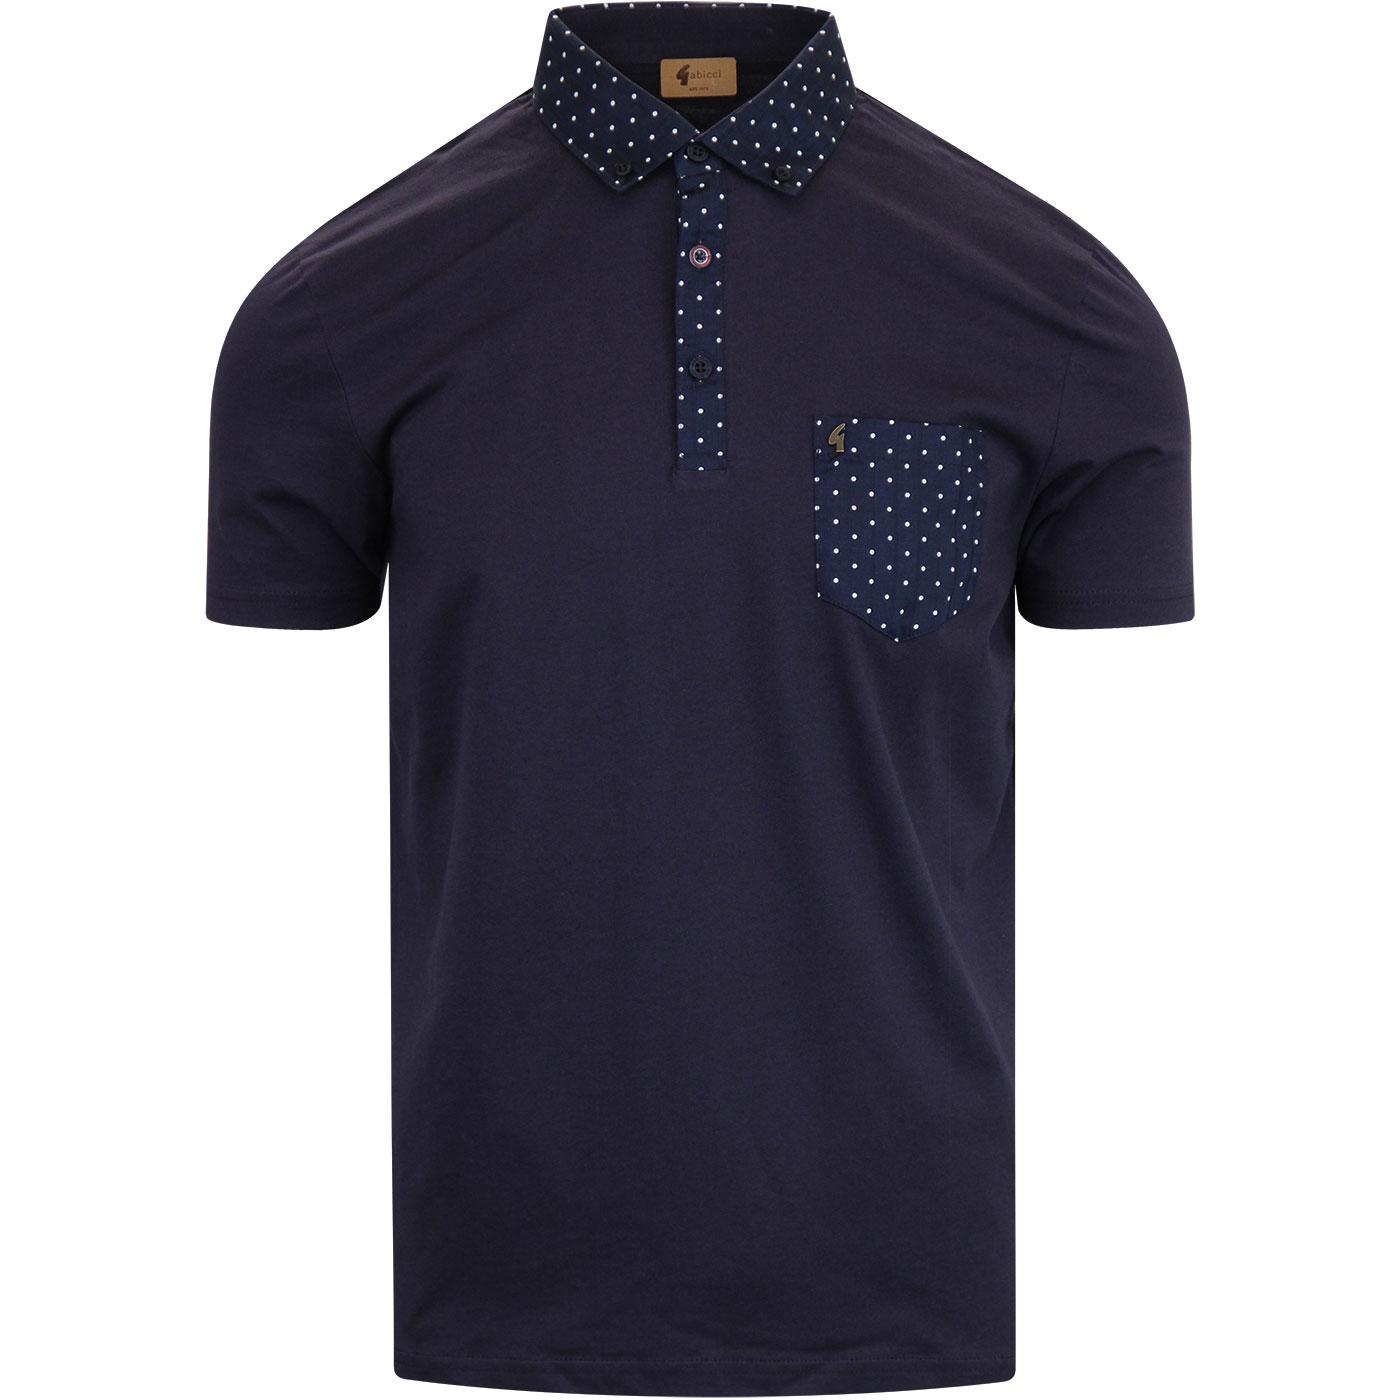 Kemble GABICCI VINTAGE Mod Polka Dot Polo Top (N)